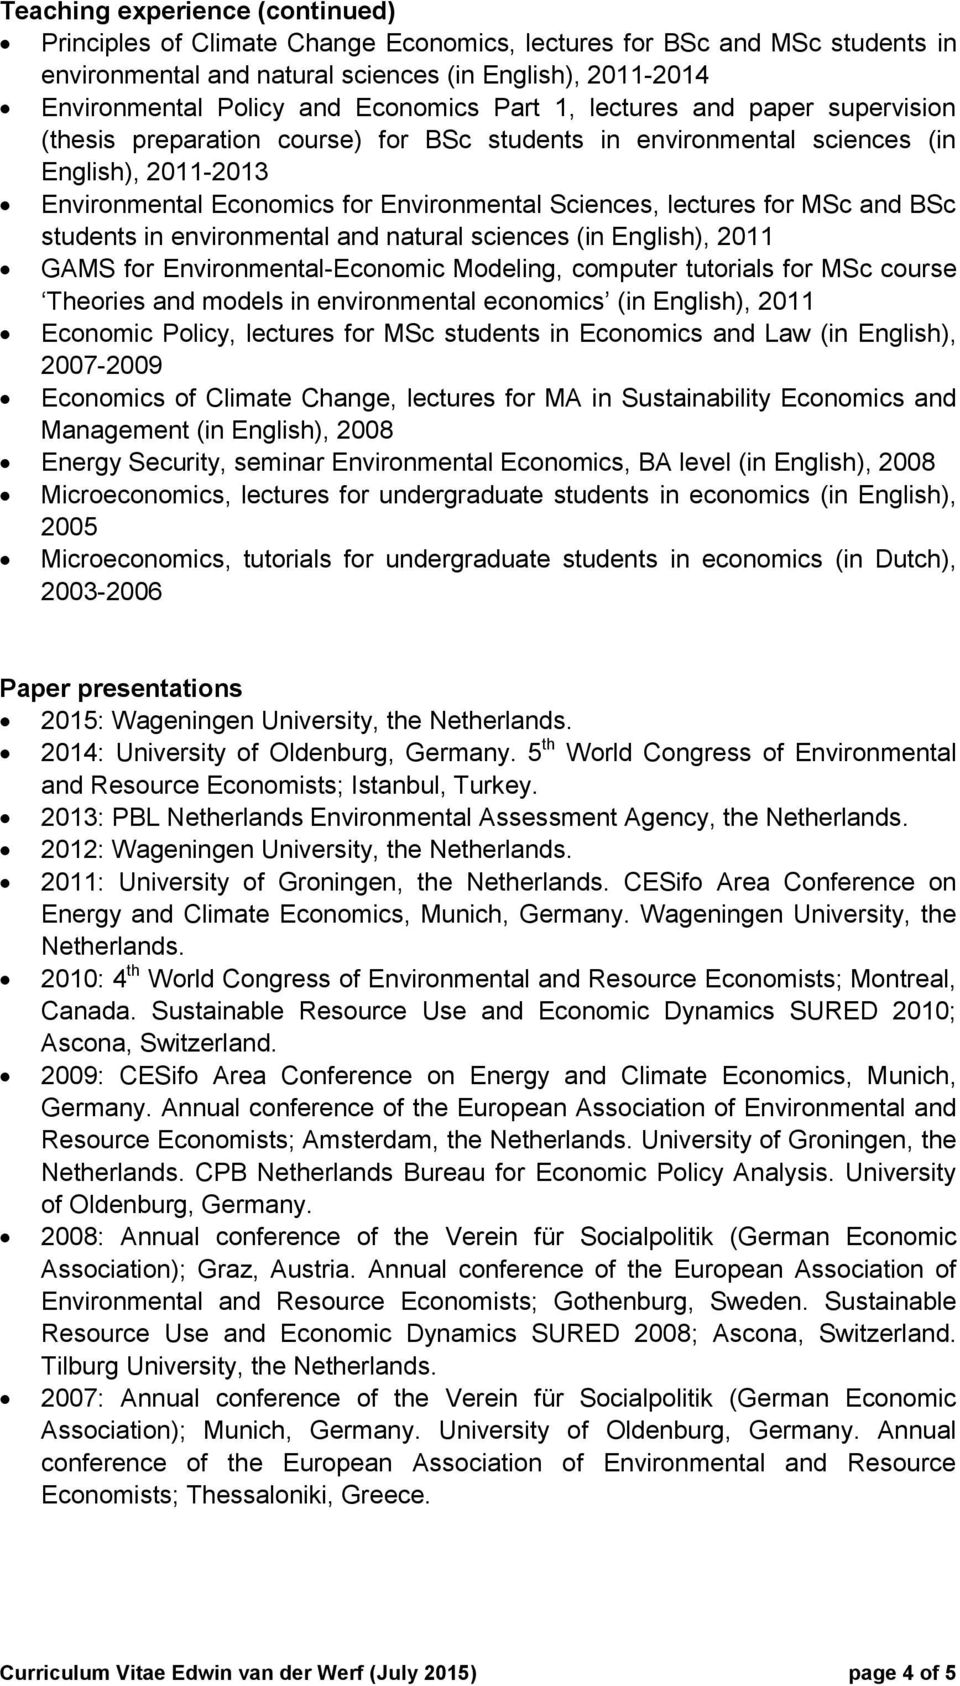 lectures for MSc and BSc students in environmental and natural sciences (in English), 2011 GAMS for Environmental-Economic Modeling, computer tutorials for MSc course Theories and models in